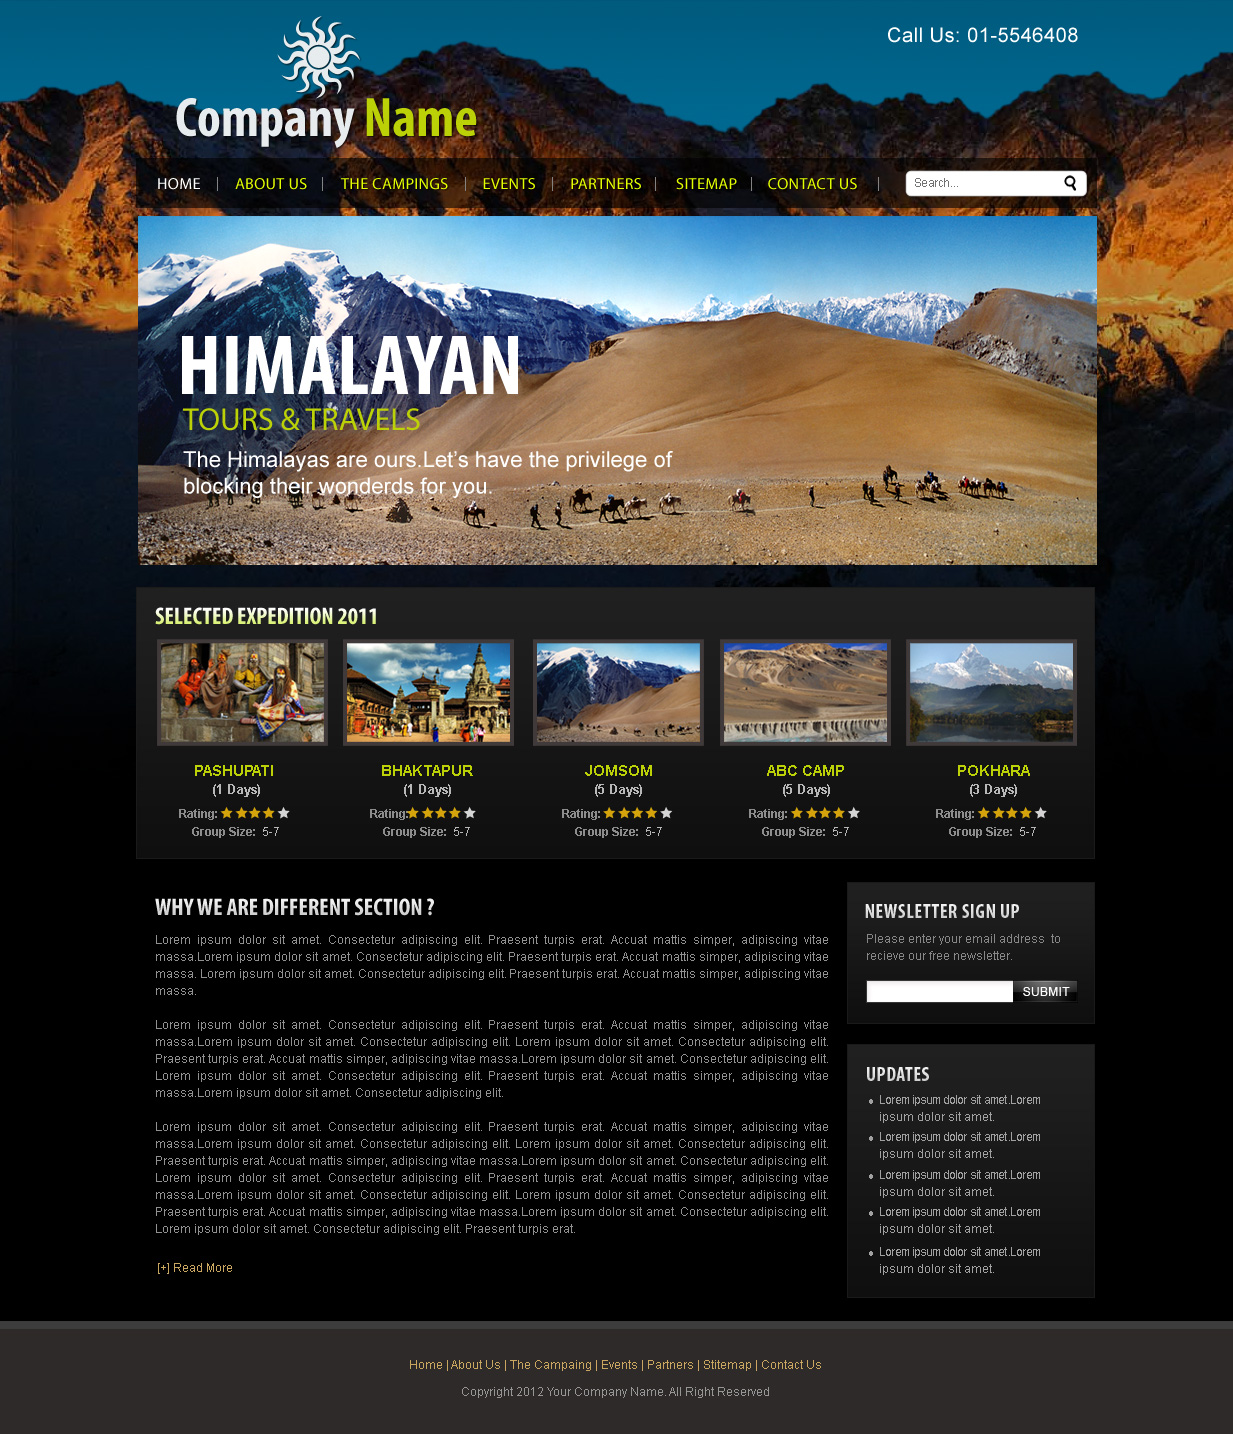 Travel and tours free template by nabinbuzz on deviantart travel and tours free template by nabinbuzz maxwellsz